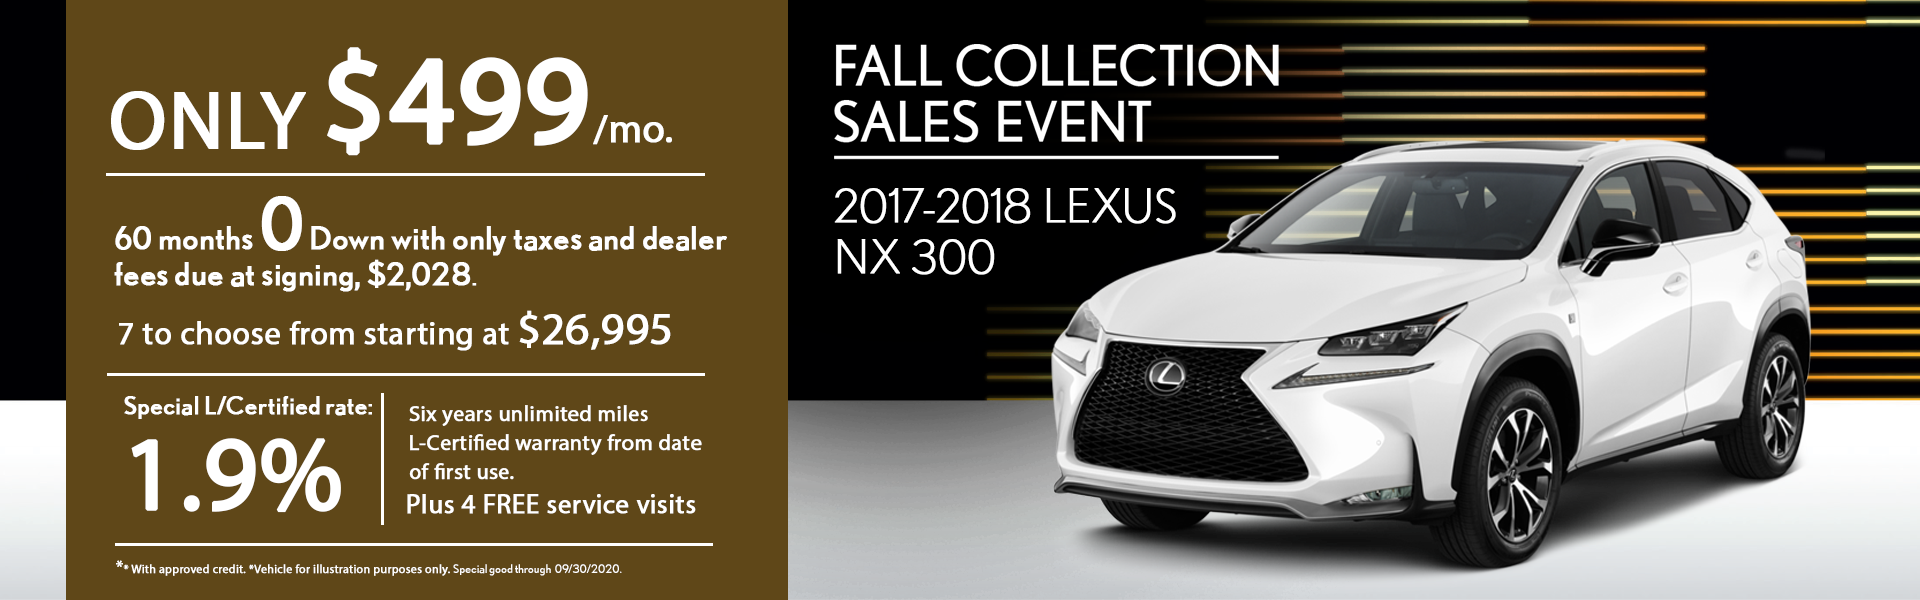 Fall collection Sales event NX 300 2017-2018 special